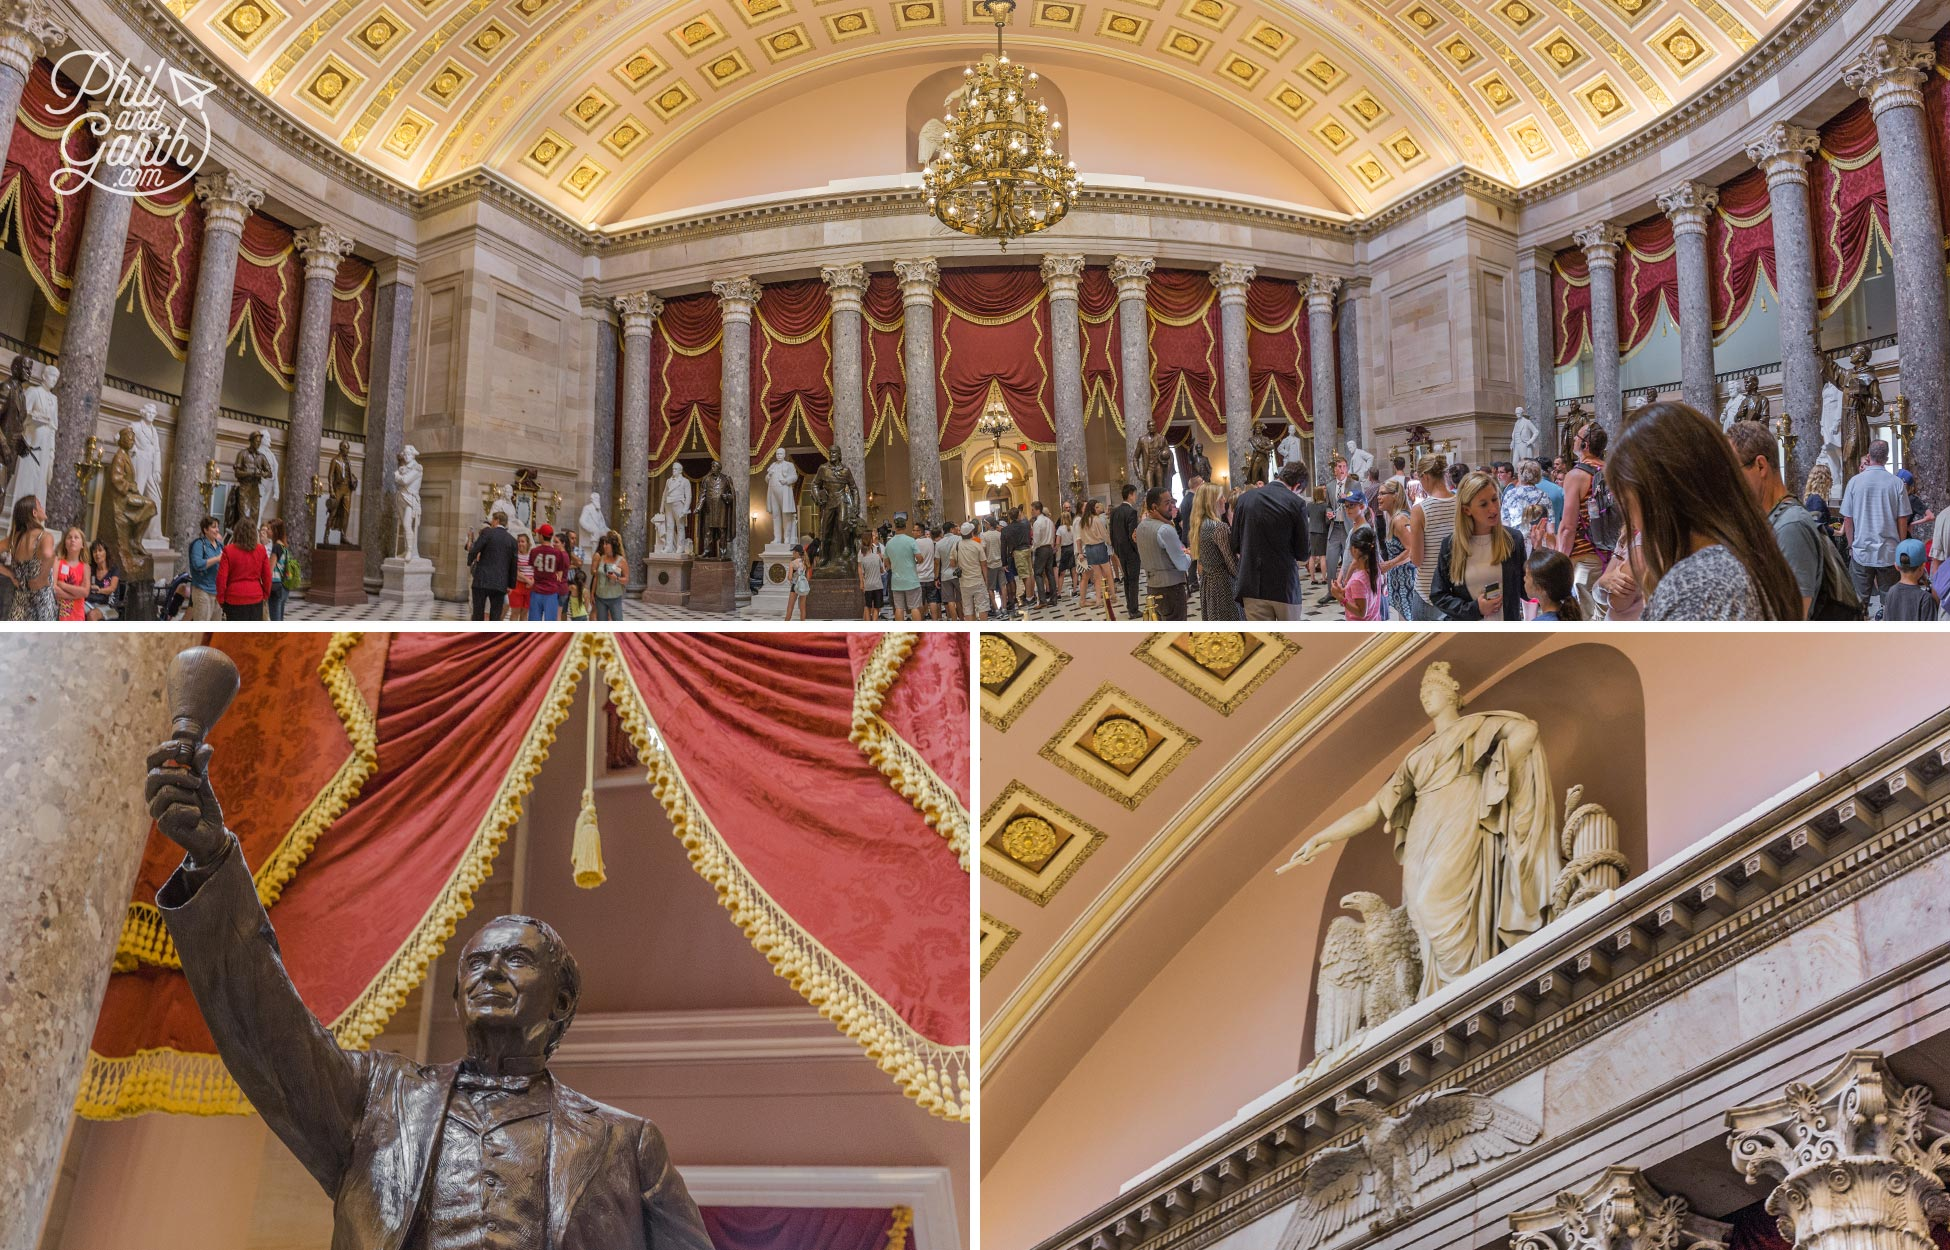 The National Statuary Hall is where Congress used to meet, but the room became too small. It's now used to display statues